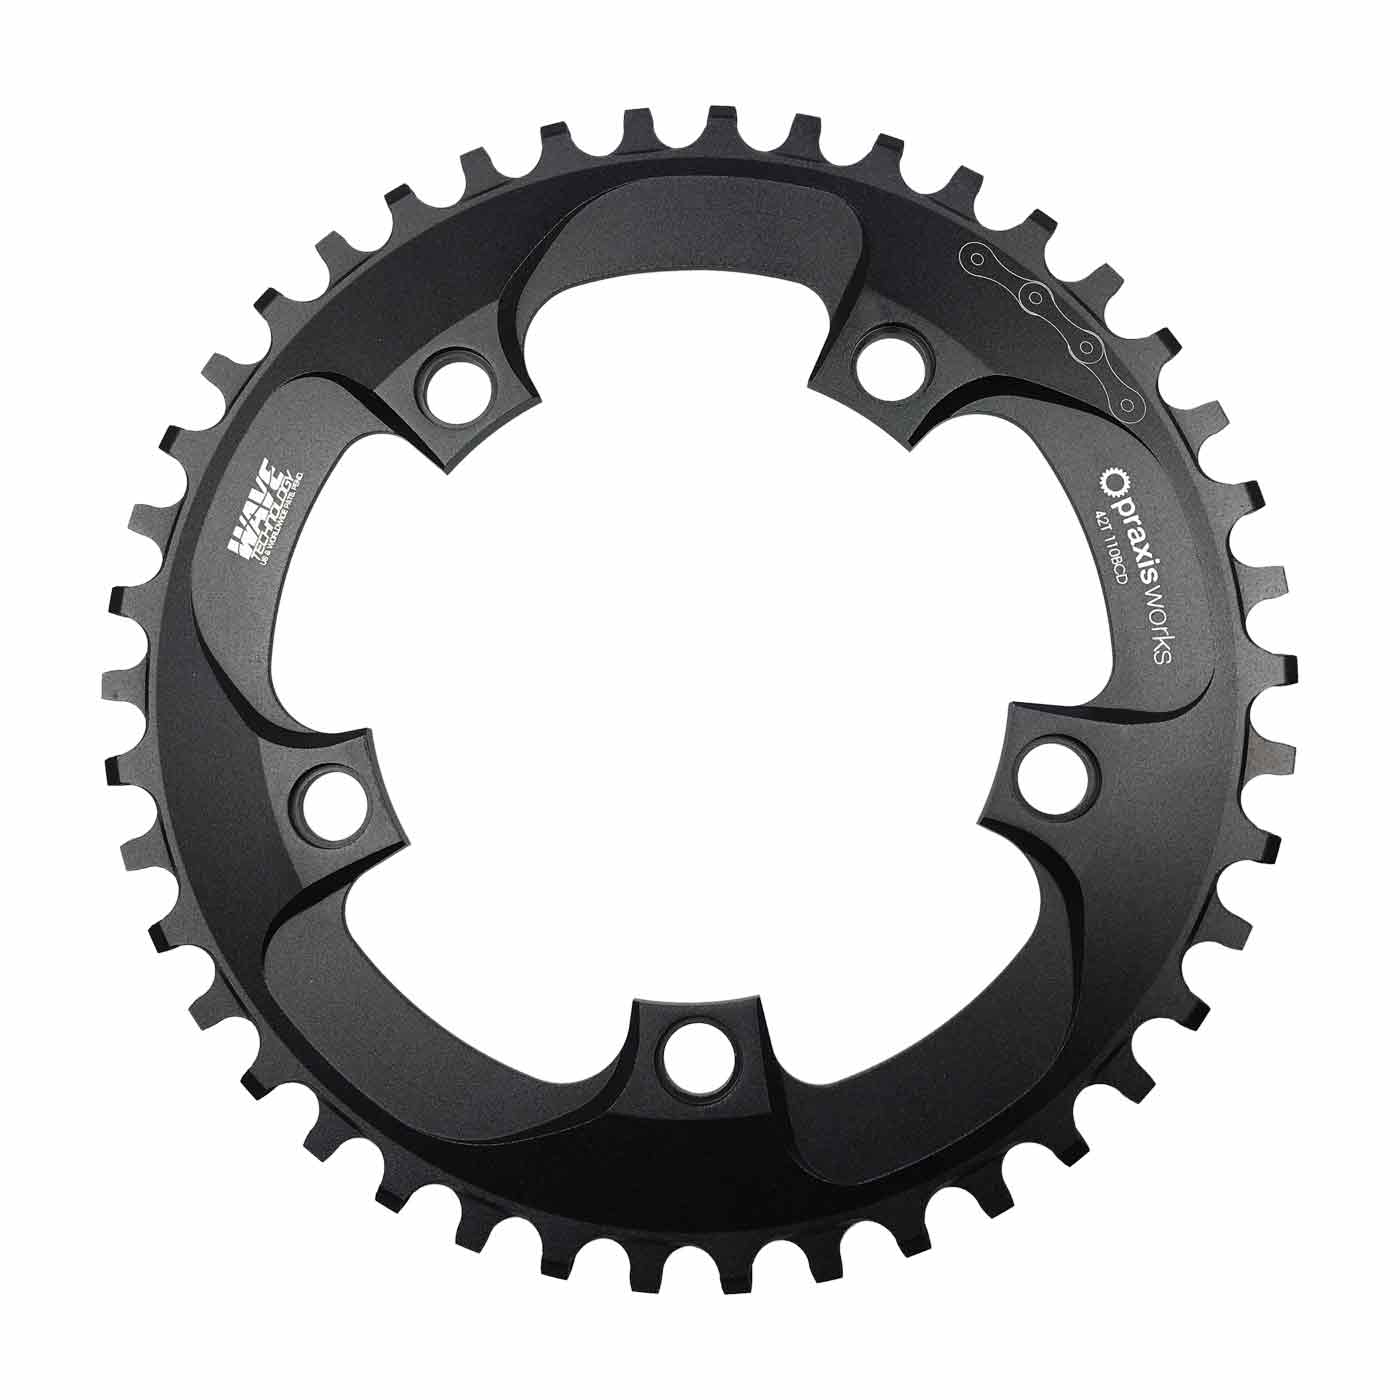 Road 1x Chainrings